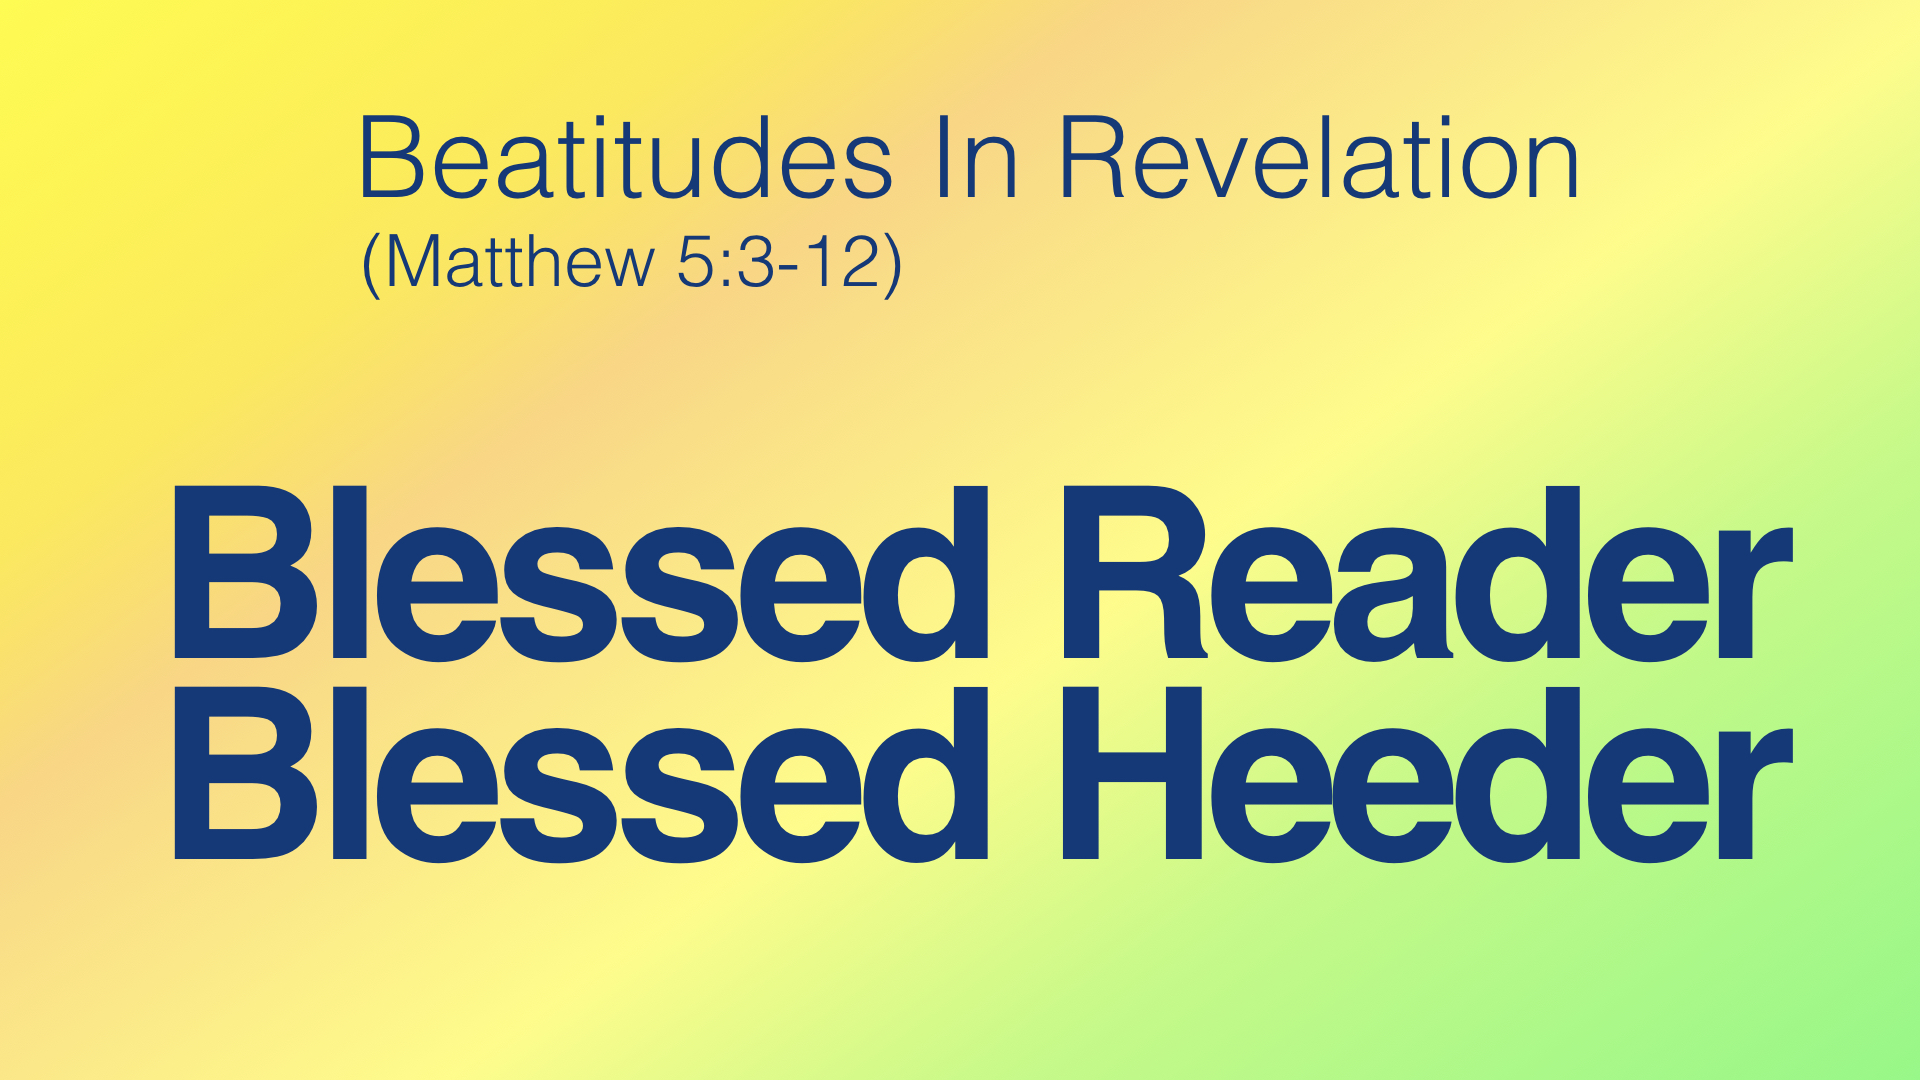 Beatitudes in Revalation - 1 Blessed Reader:Blessed Heeder WIDE.jpeg